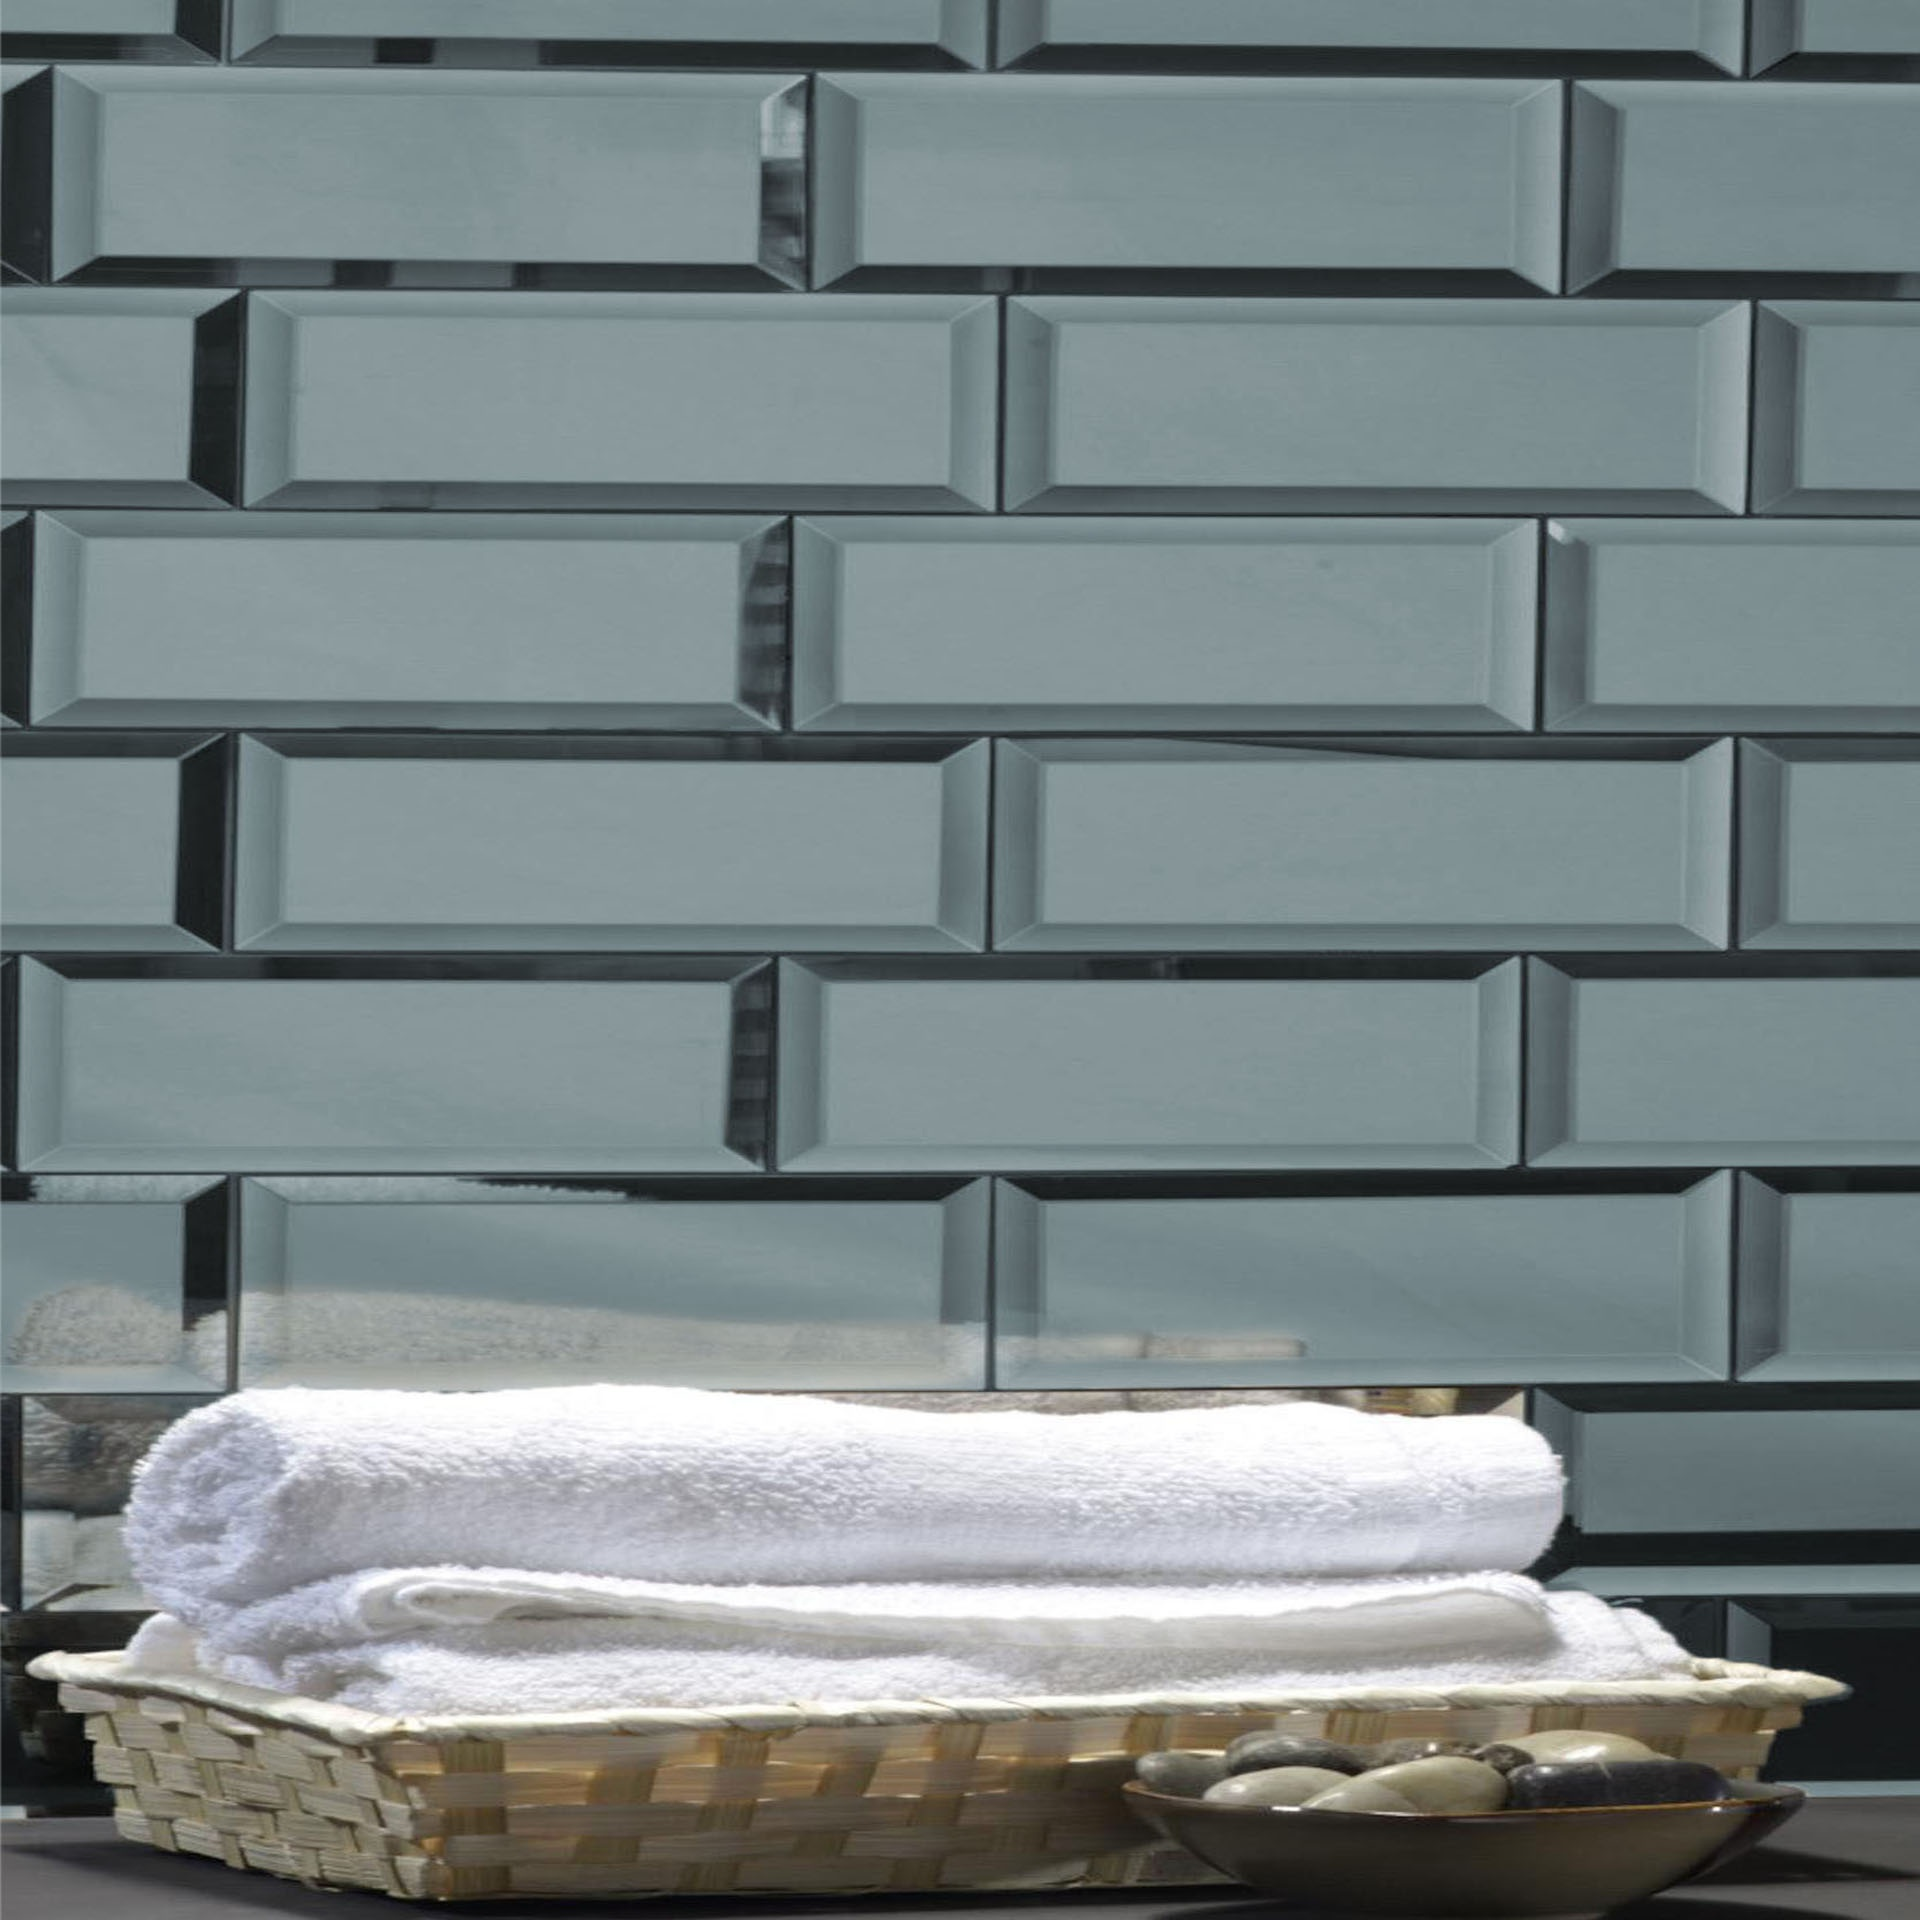 Reflections 3 in x 12 in Mirror Subway Tile in GRAPHITE Glossy